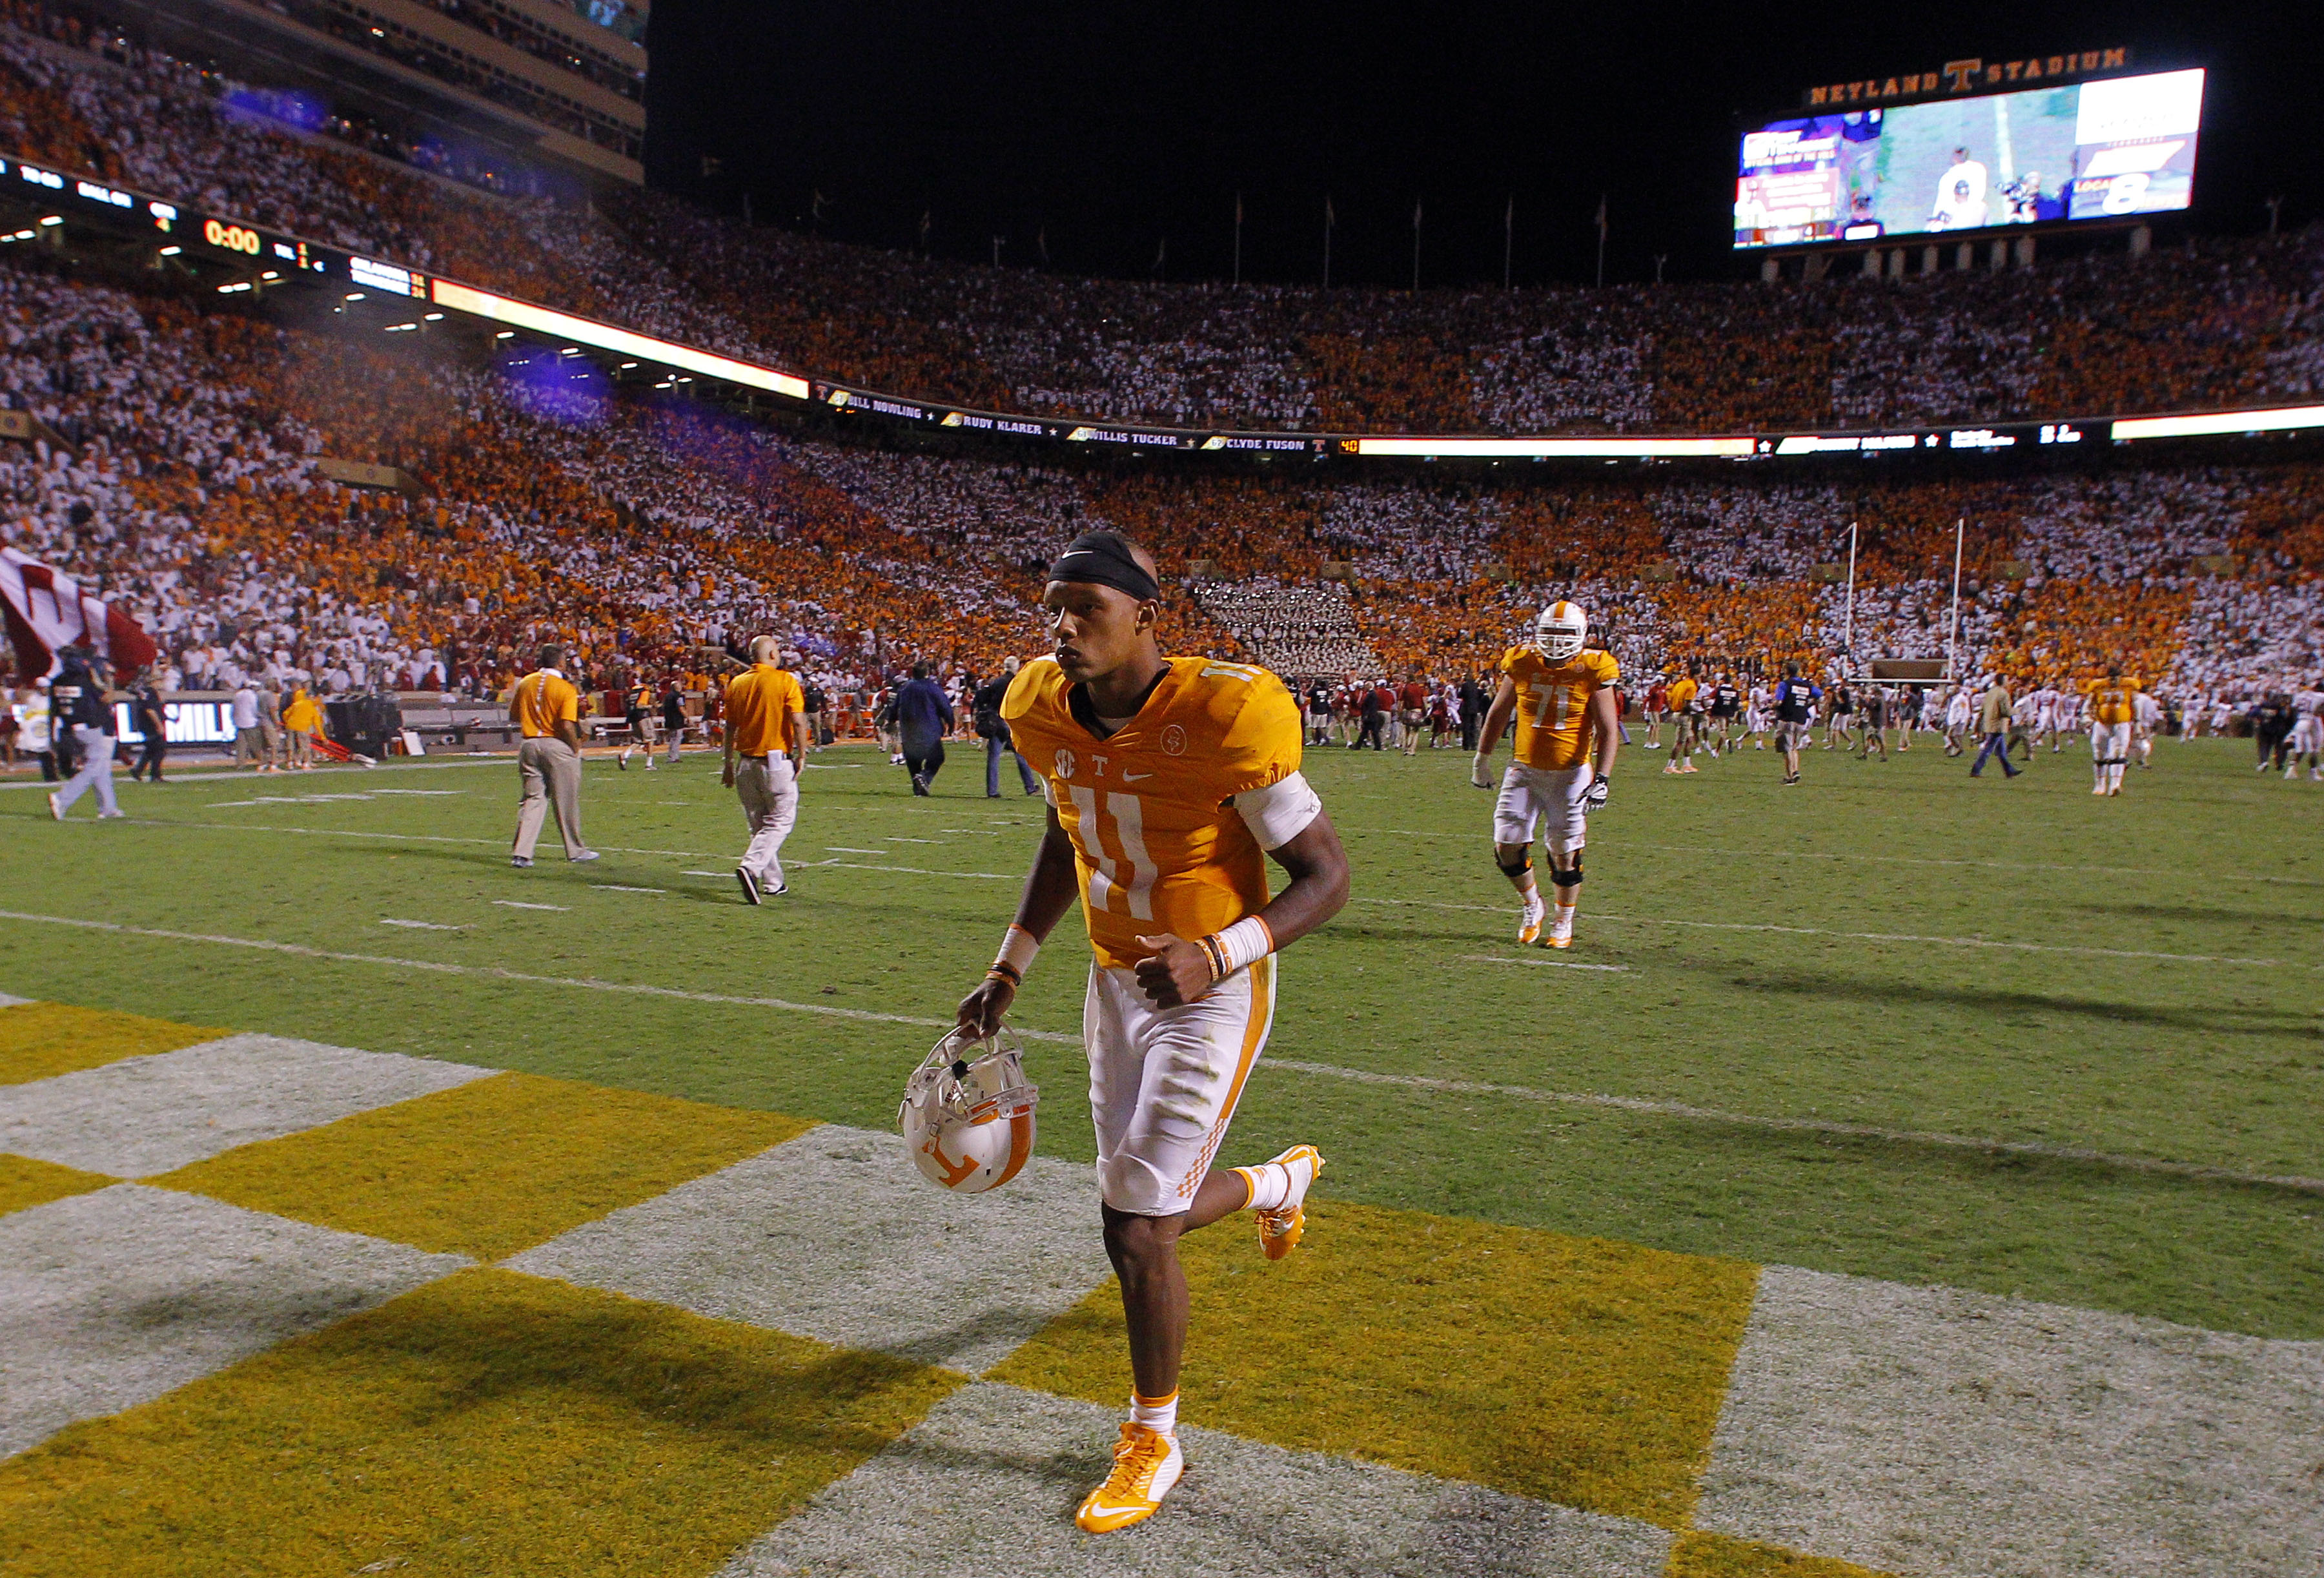 Tennessee quarterback Joshua Dobbs (11) leaves the field after a 31-24 loss to Oklahoma in double overtime of an NCAA college football game Saturday, Sept. 12, 2015 in Knoxville, Tenn. (AP Photo/Wade Payne)